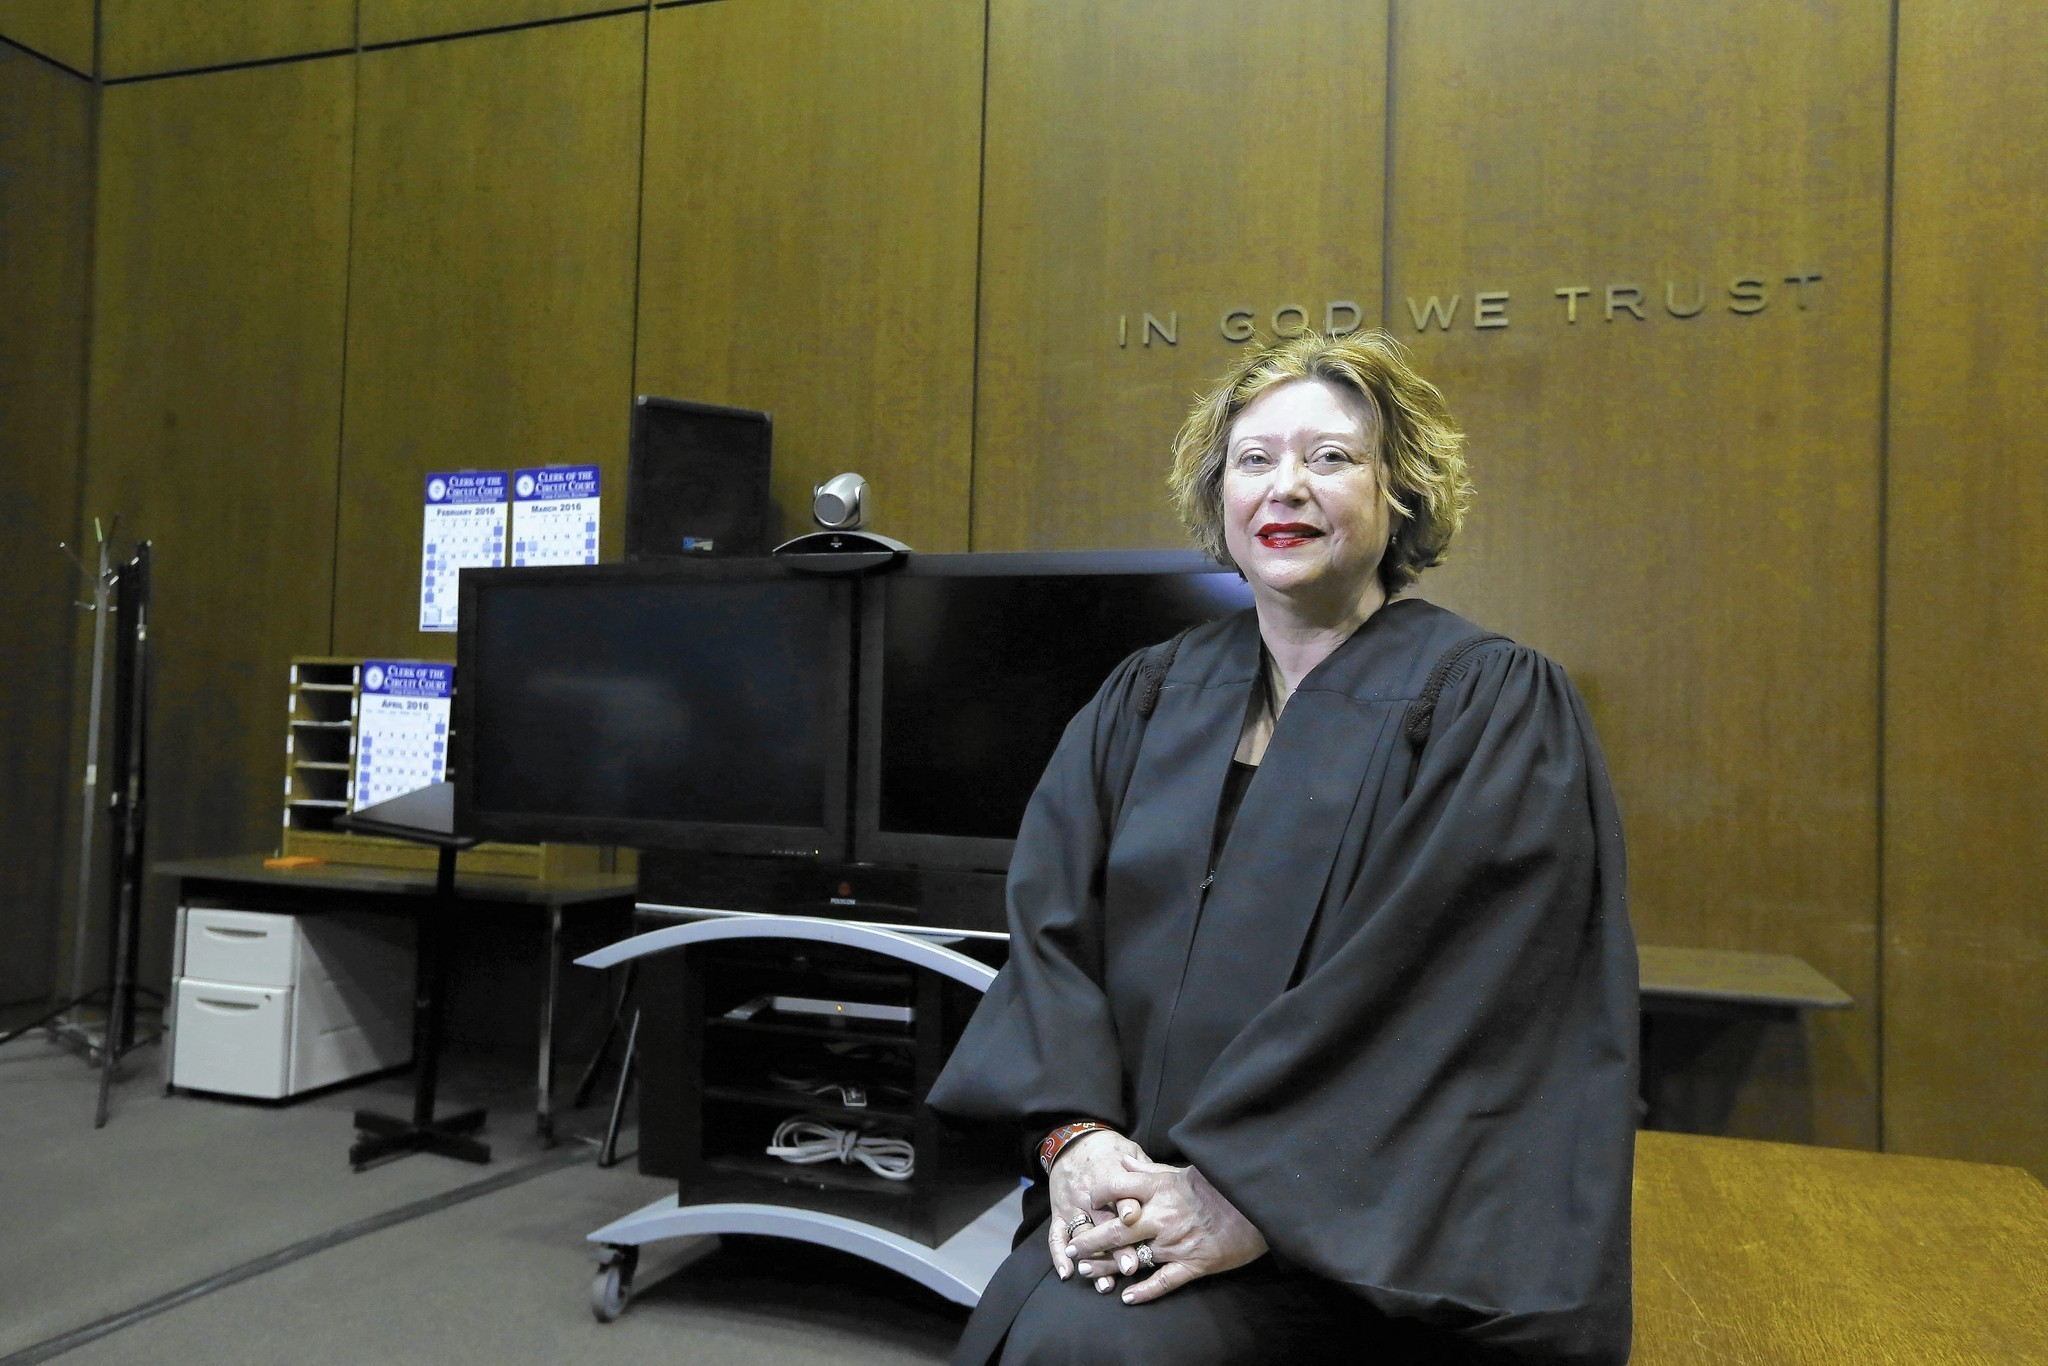 Difficult Prison Divorces Easing With Judge S Help